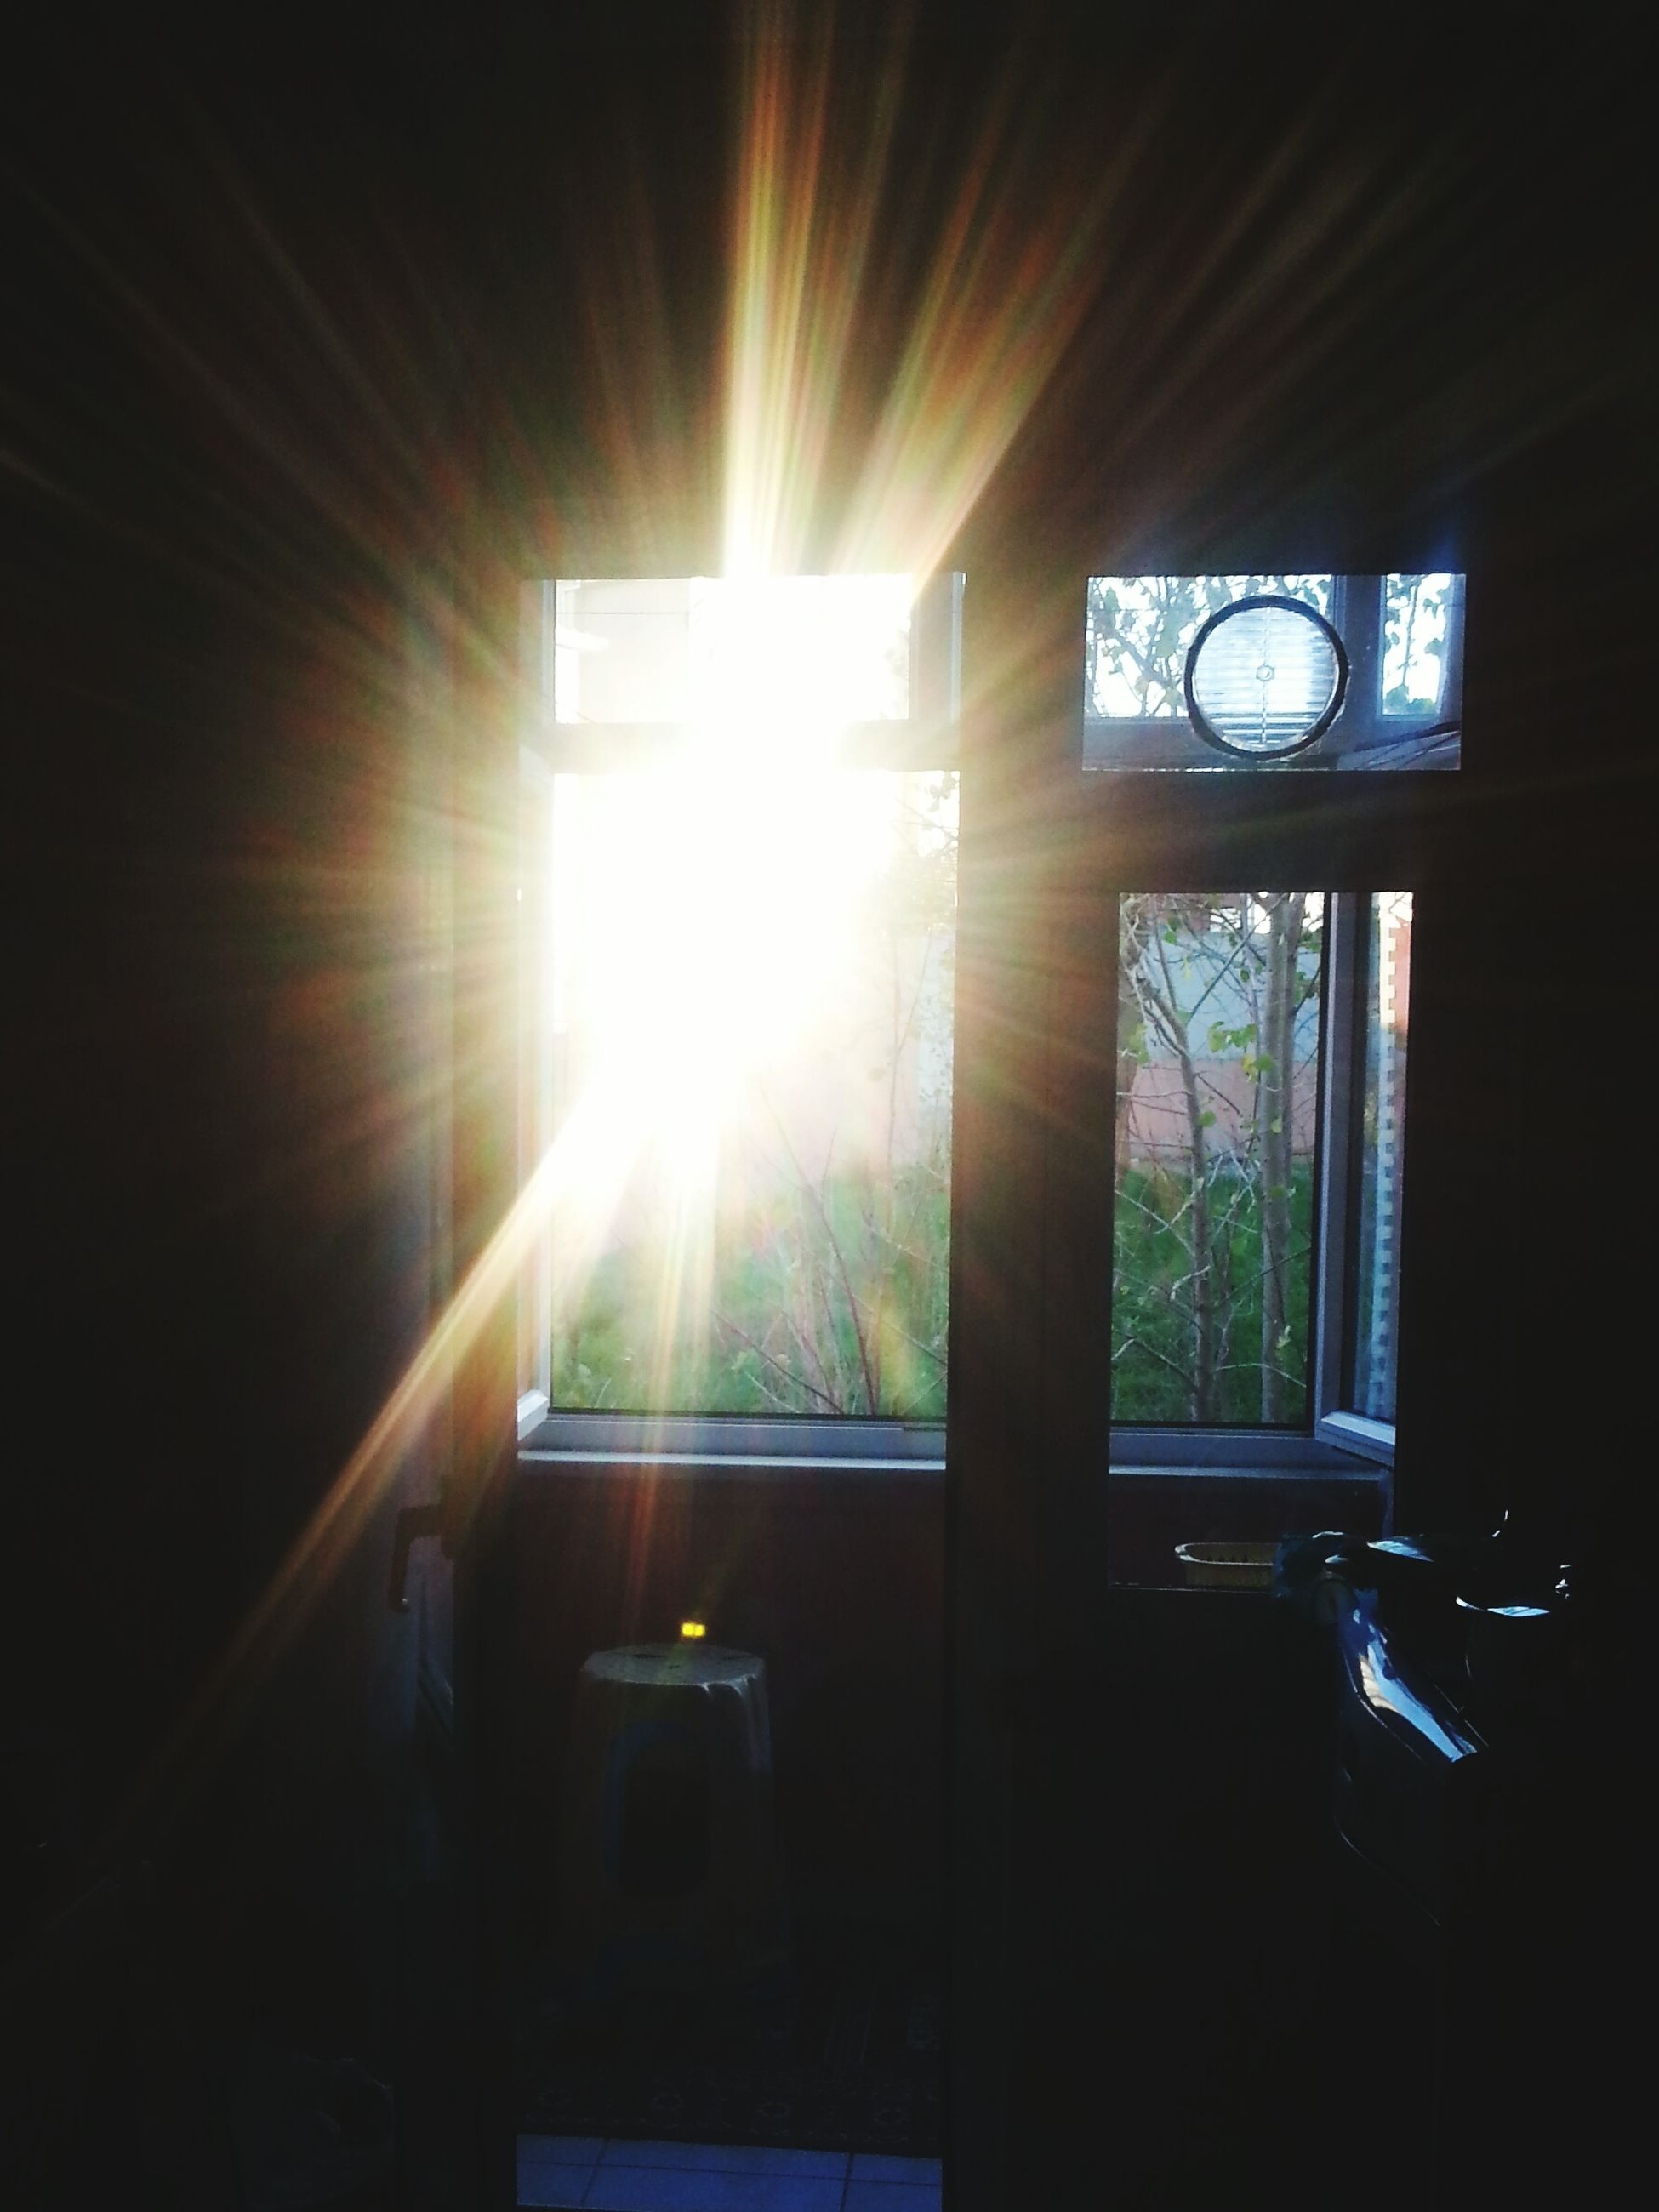 sunbeam, sunlight, lens flare, indoors, sun, window, no people, day, streaming, architecture